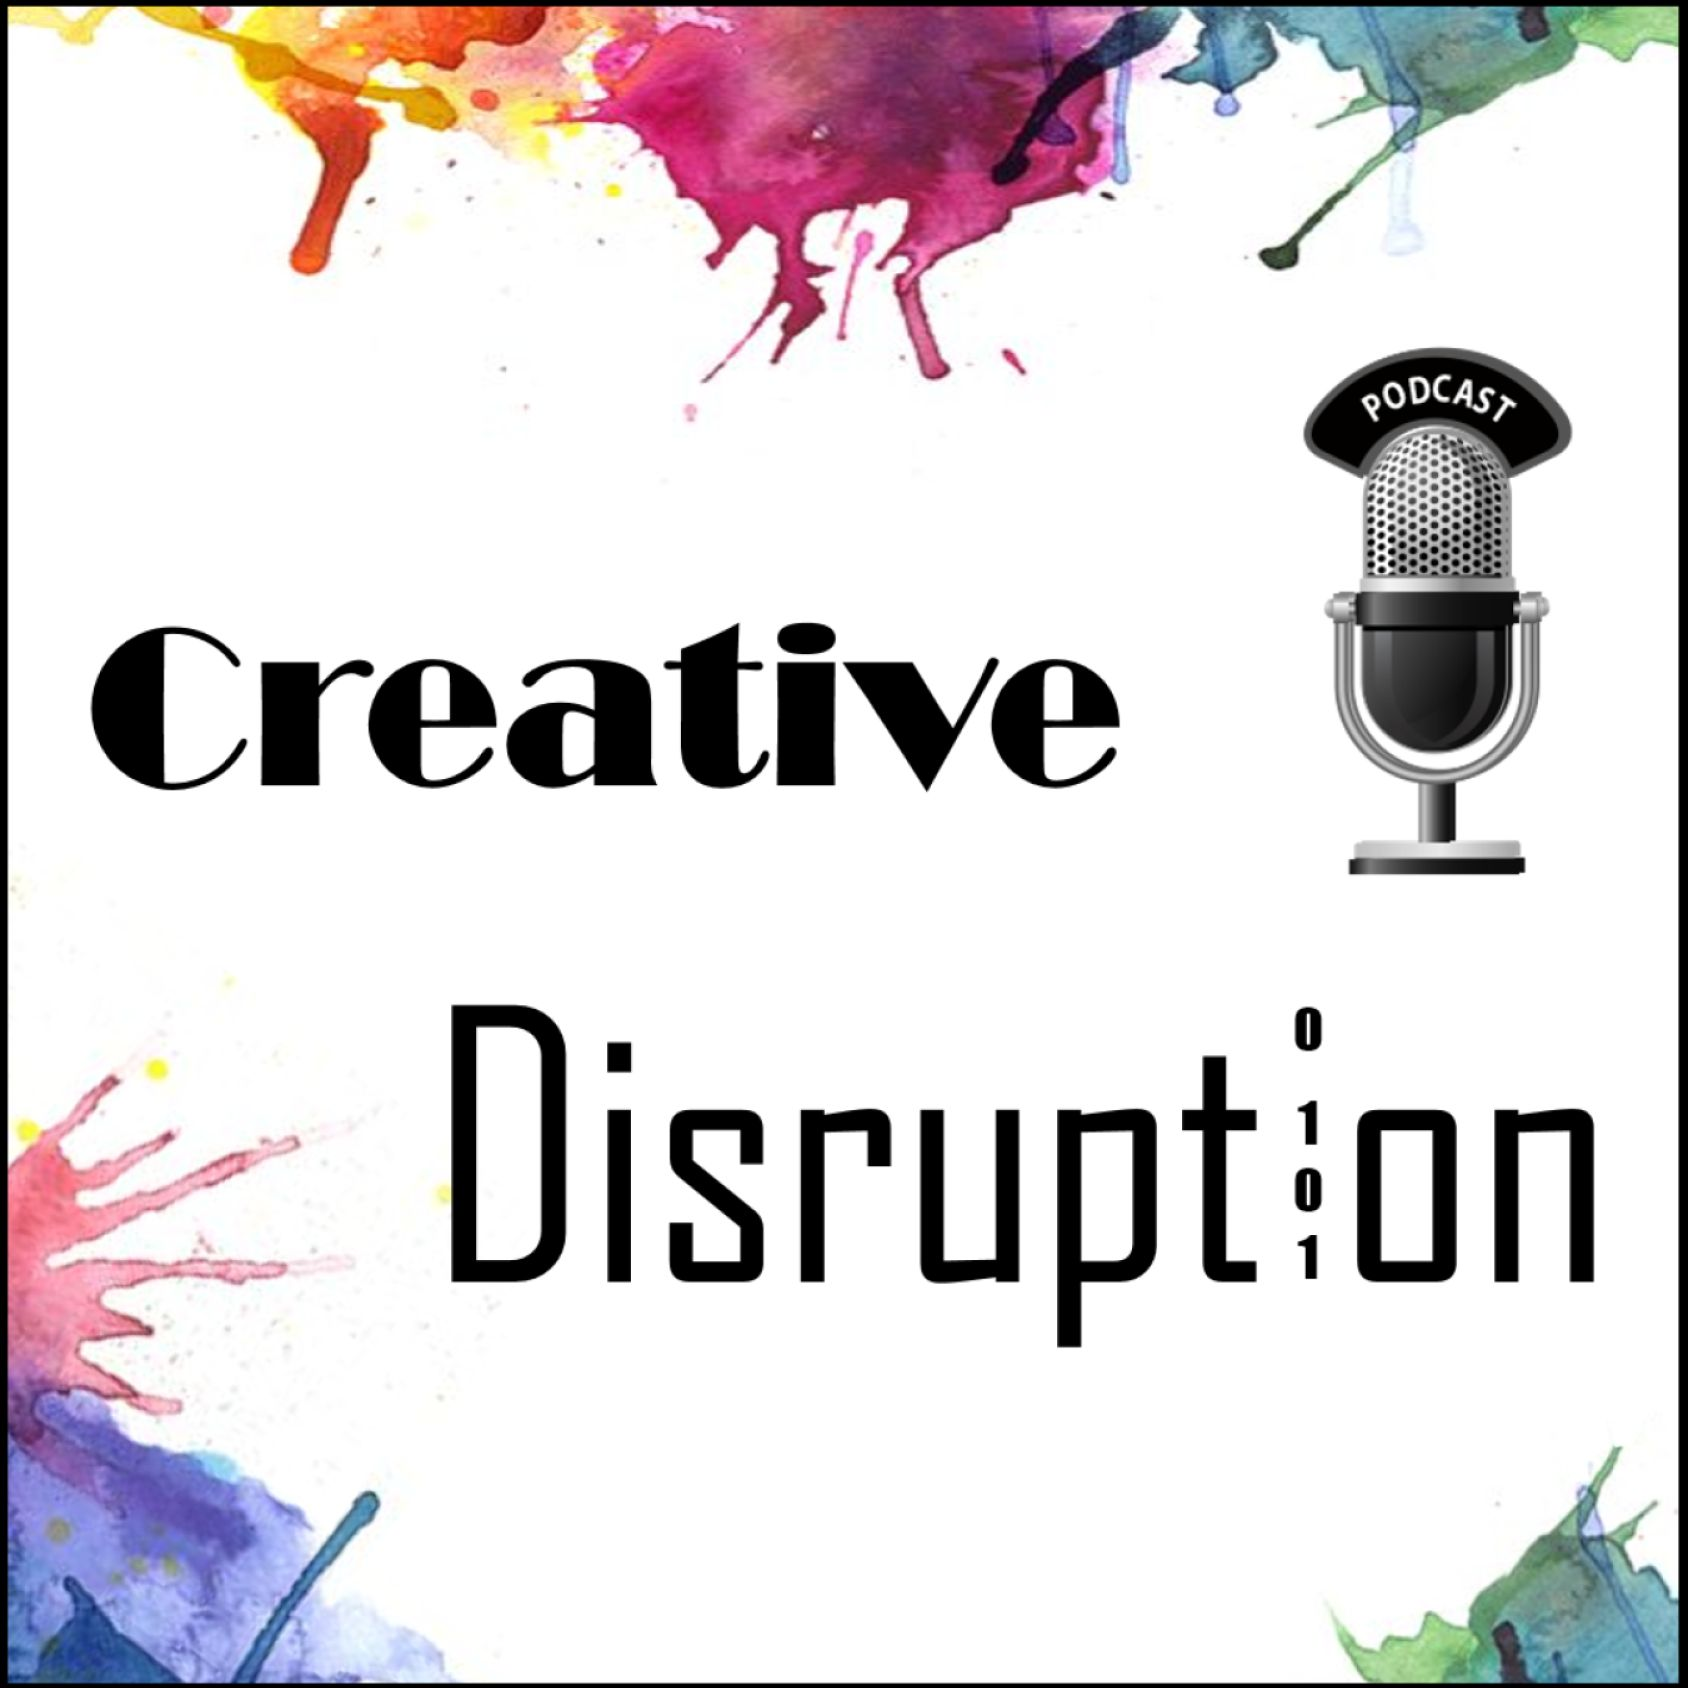 Creative Disruption Podcast